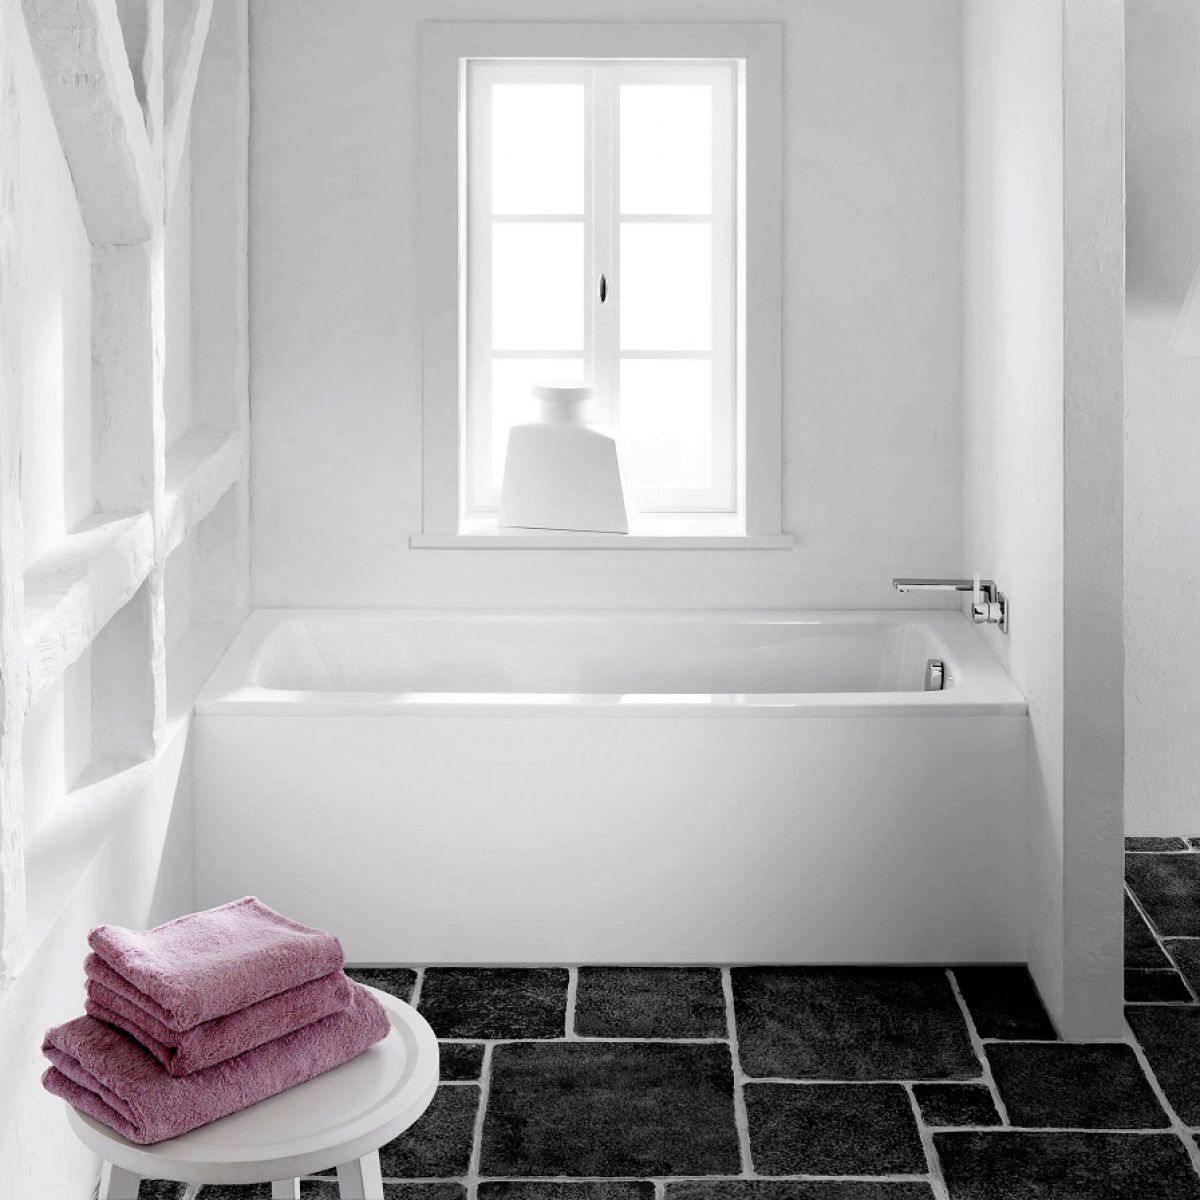 Kaldewei Cayono Luxury Steel Bath